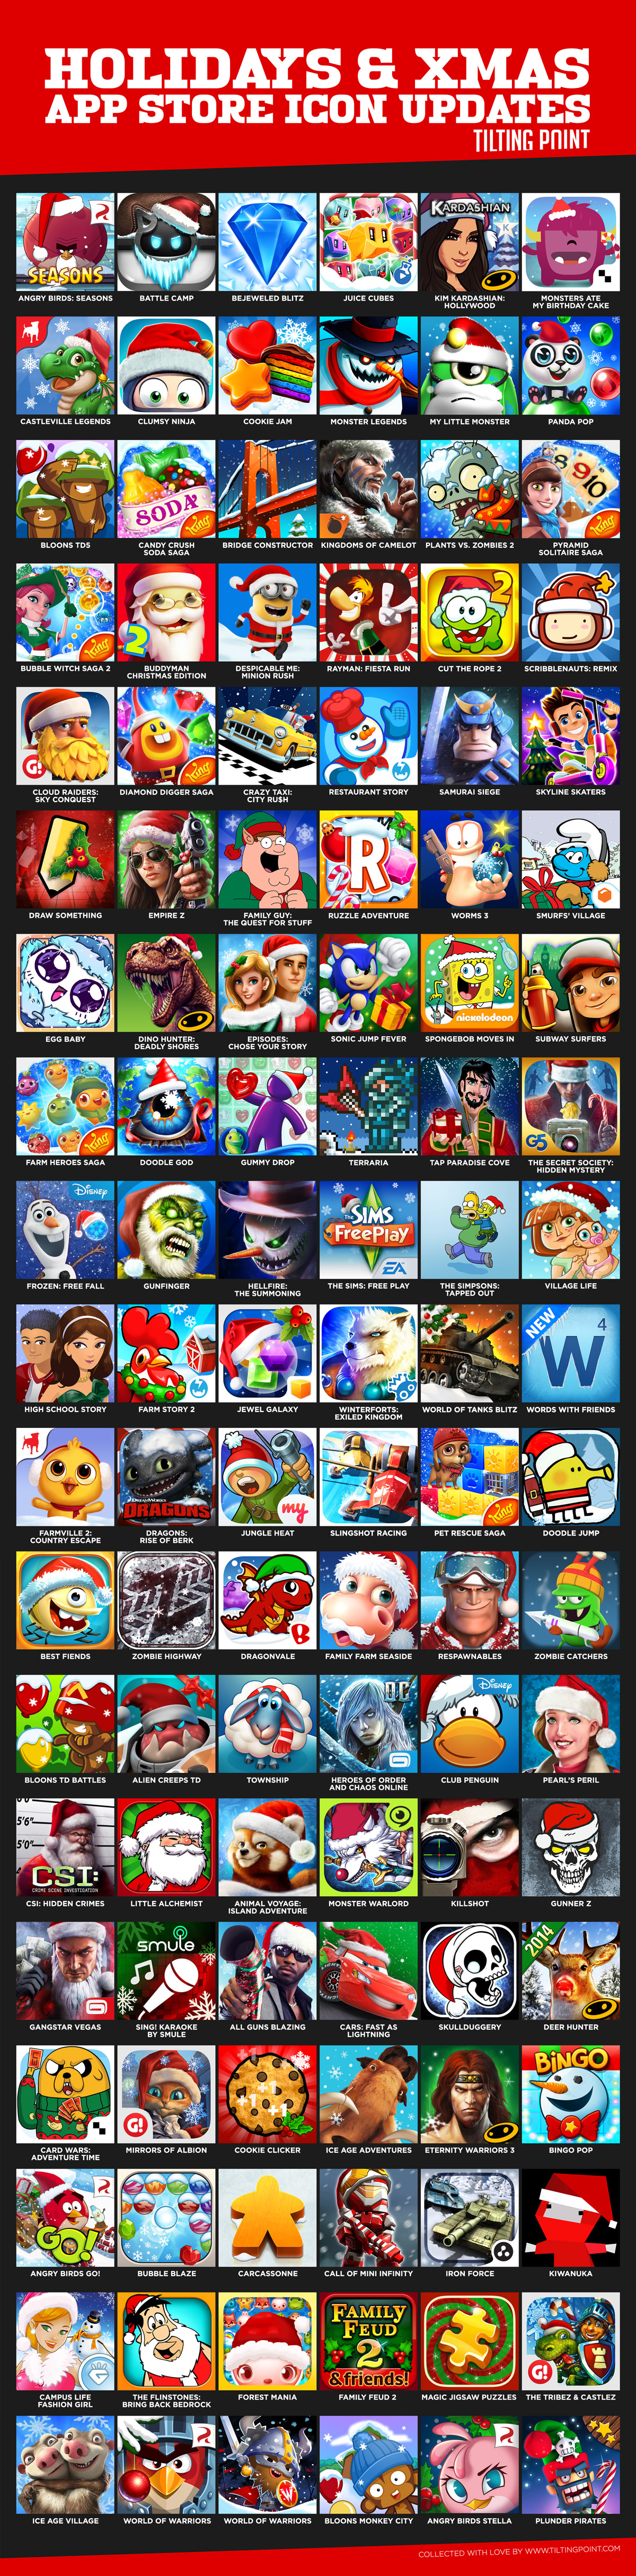 Mobile App Icons Collection - Winter Holidays and Christmas case studies